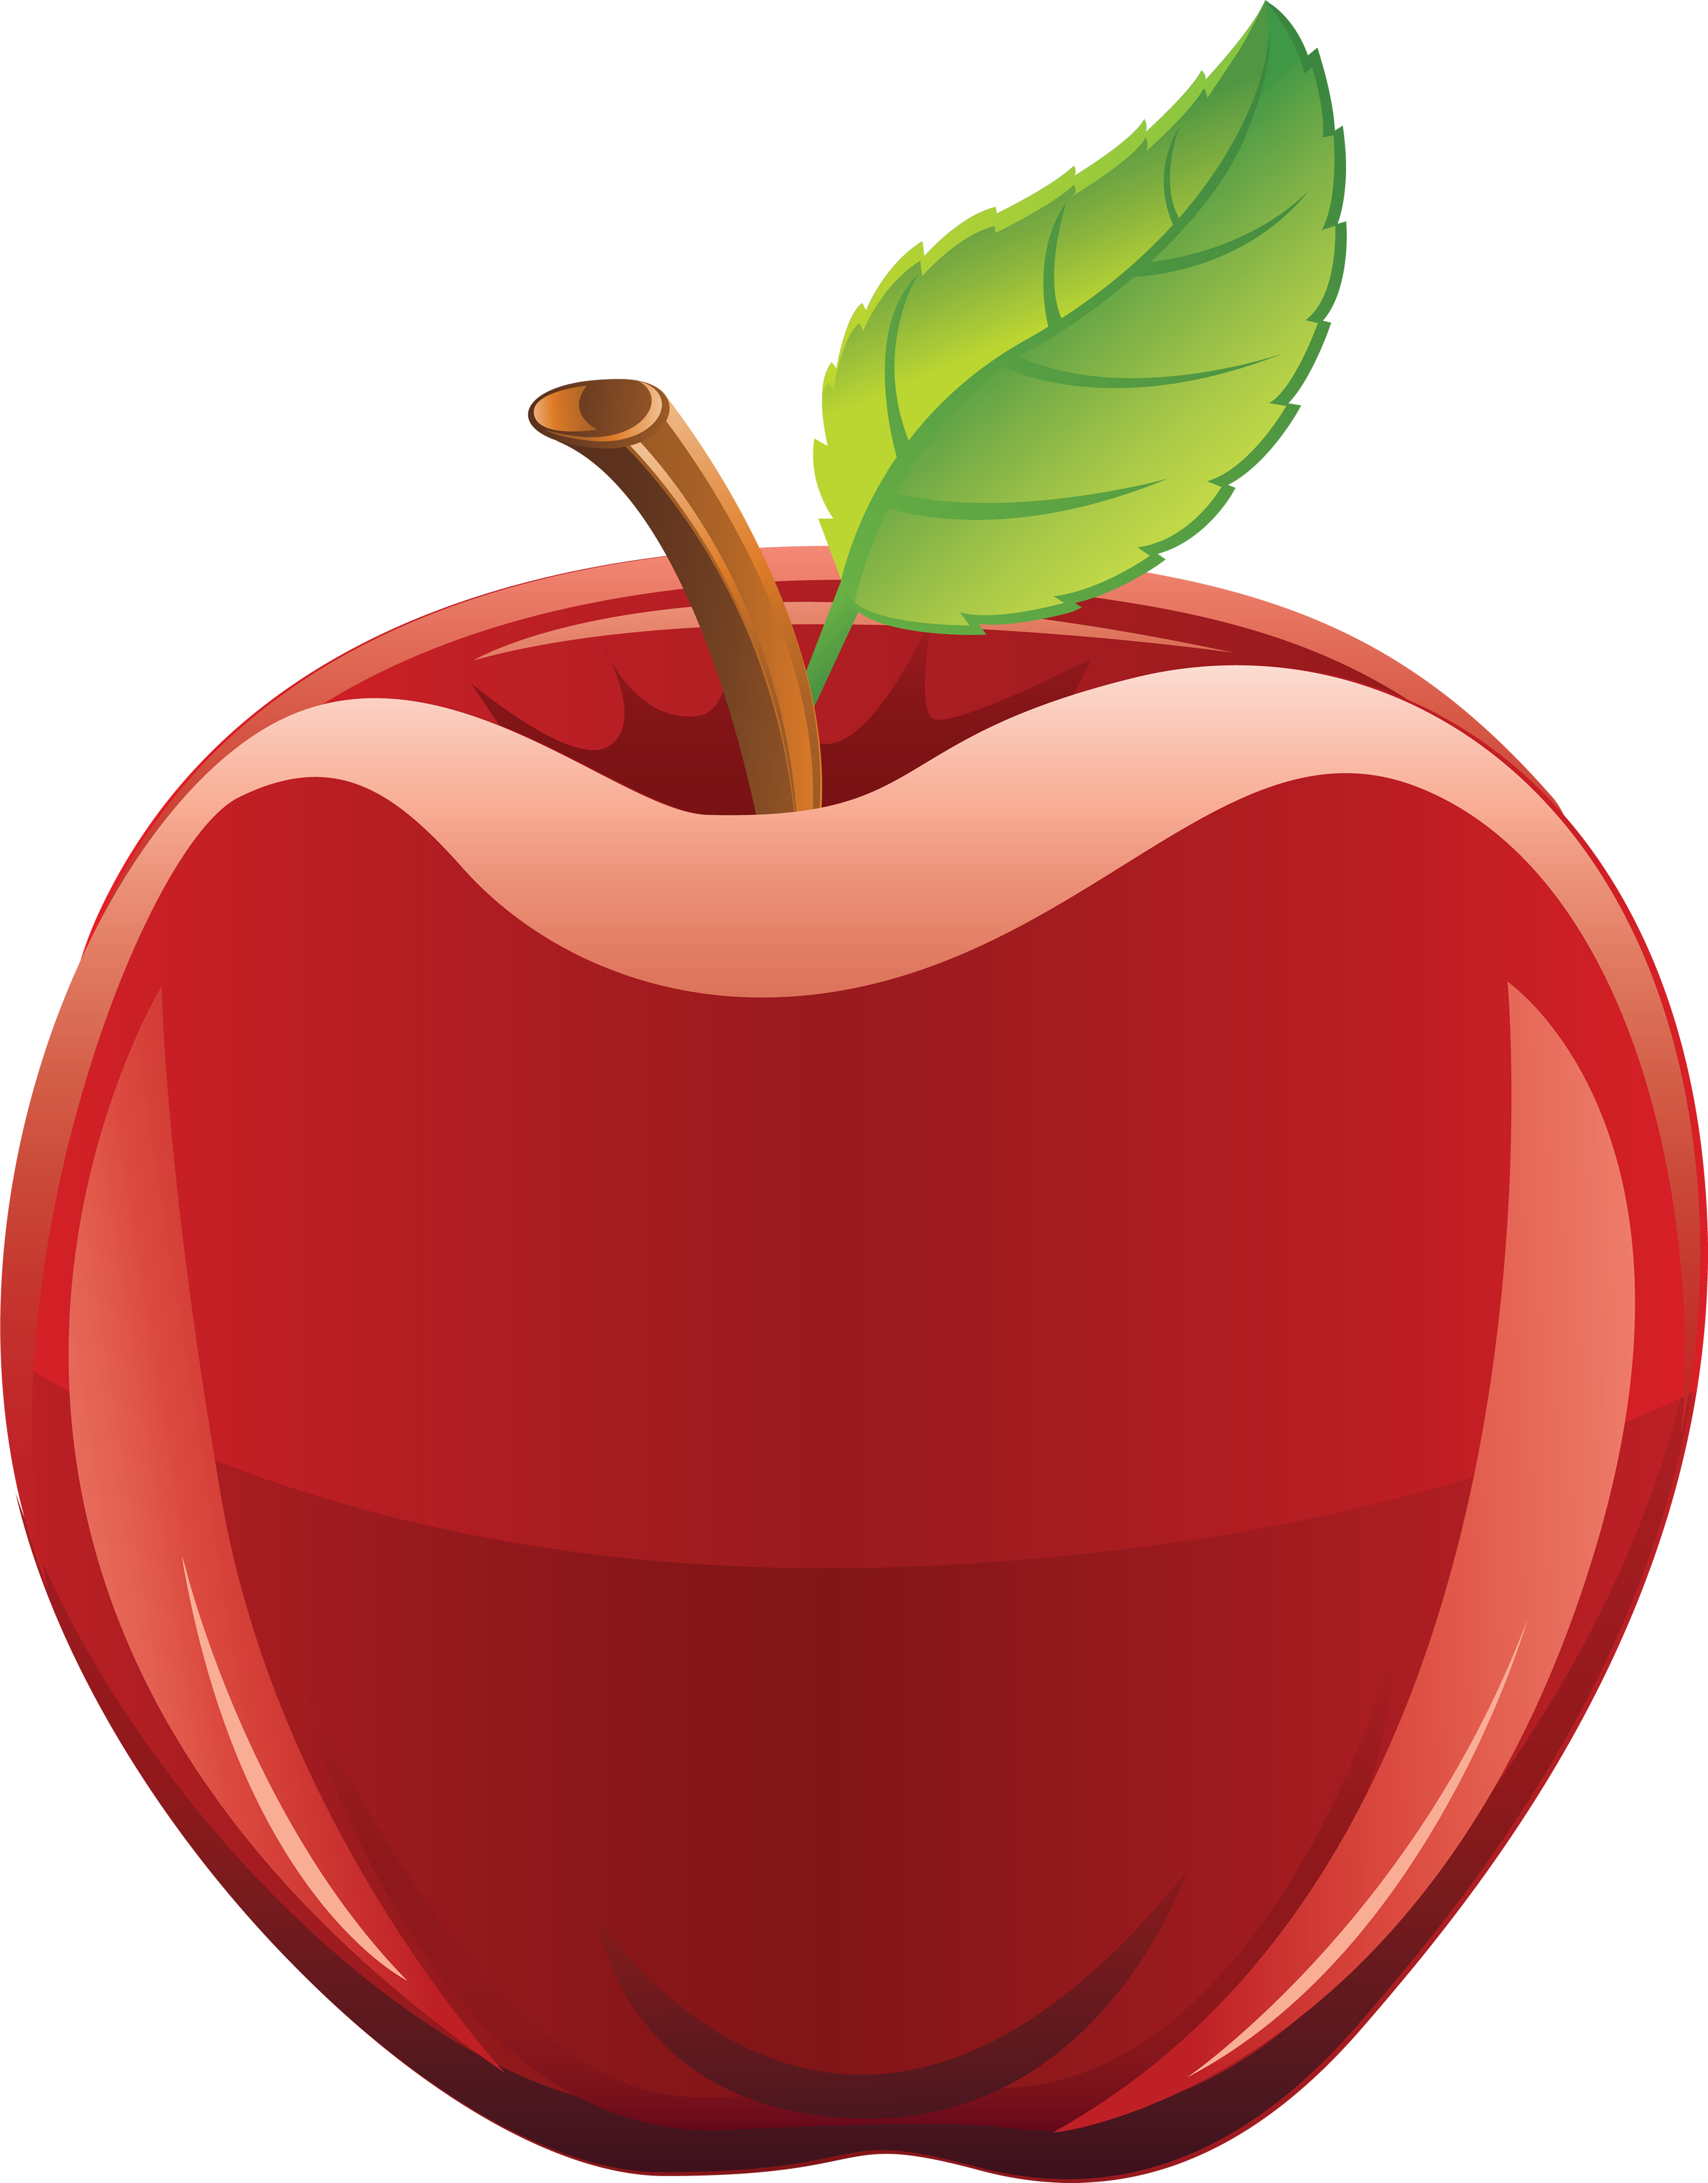 Apple hand clipart vector free download One apple clipart - ClipartFest vector free download